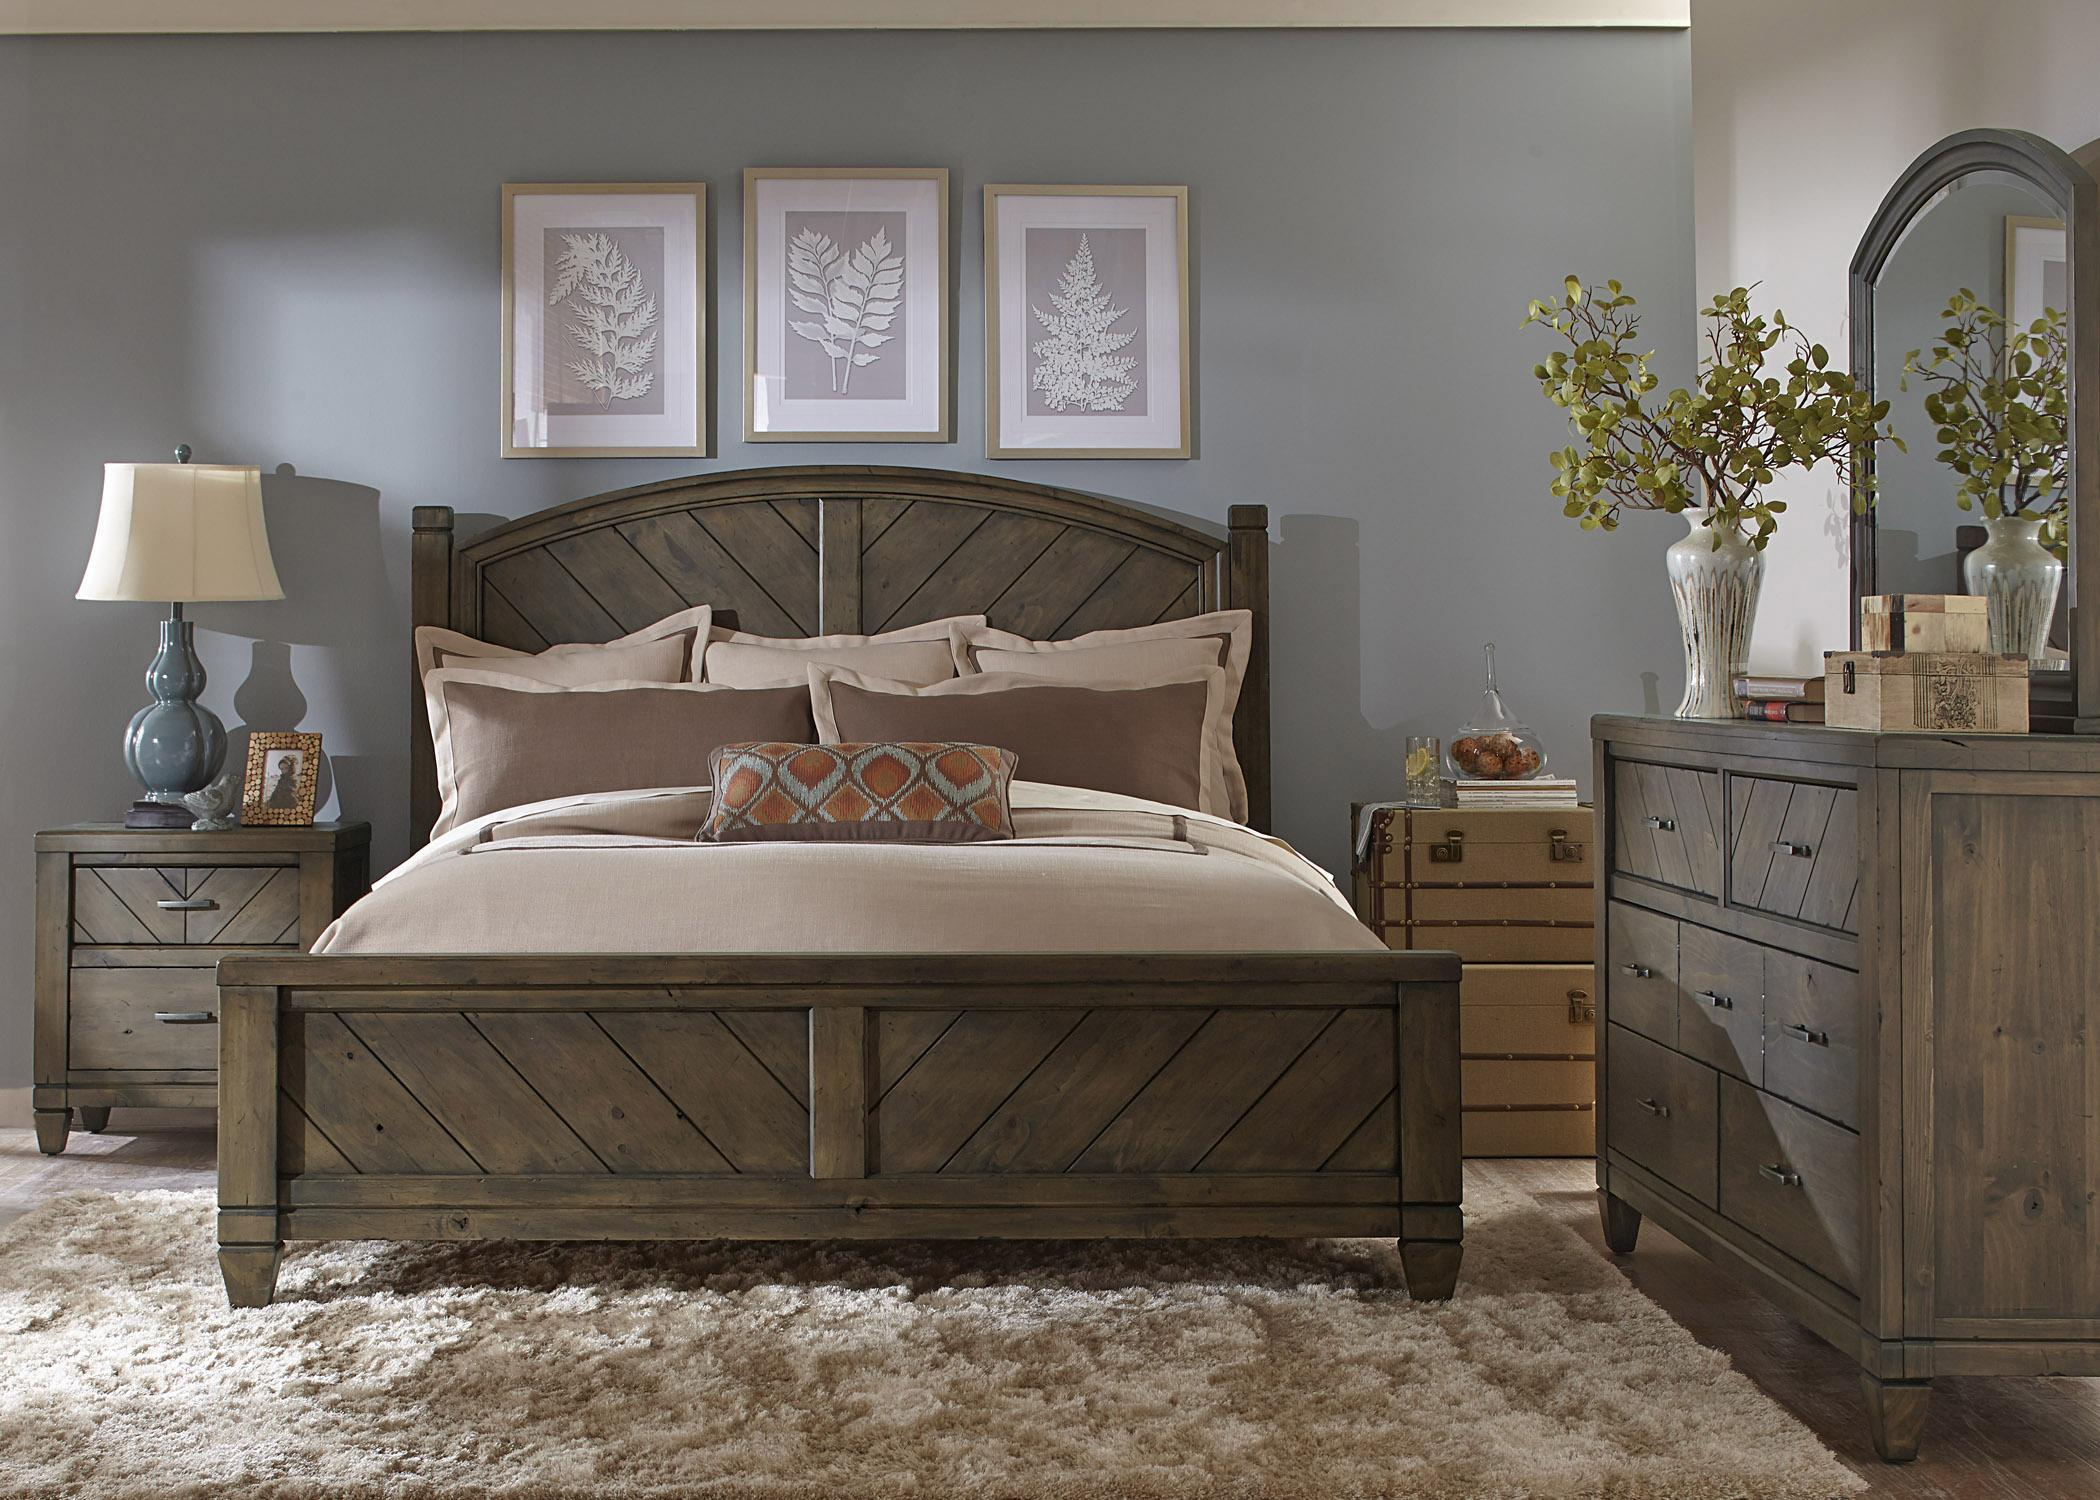 Liberty Furniture Modern Country 833 Br Kpsdmn King